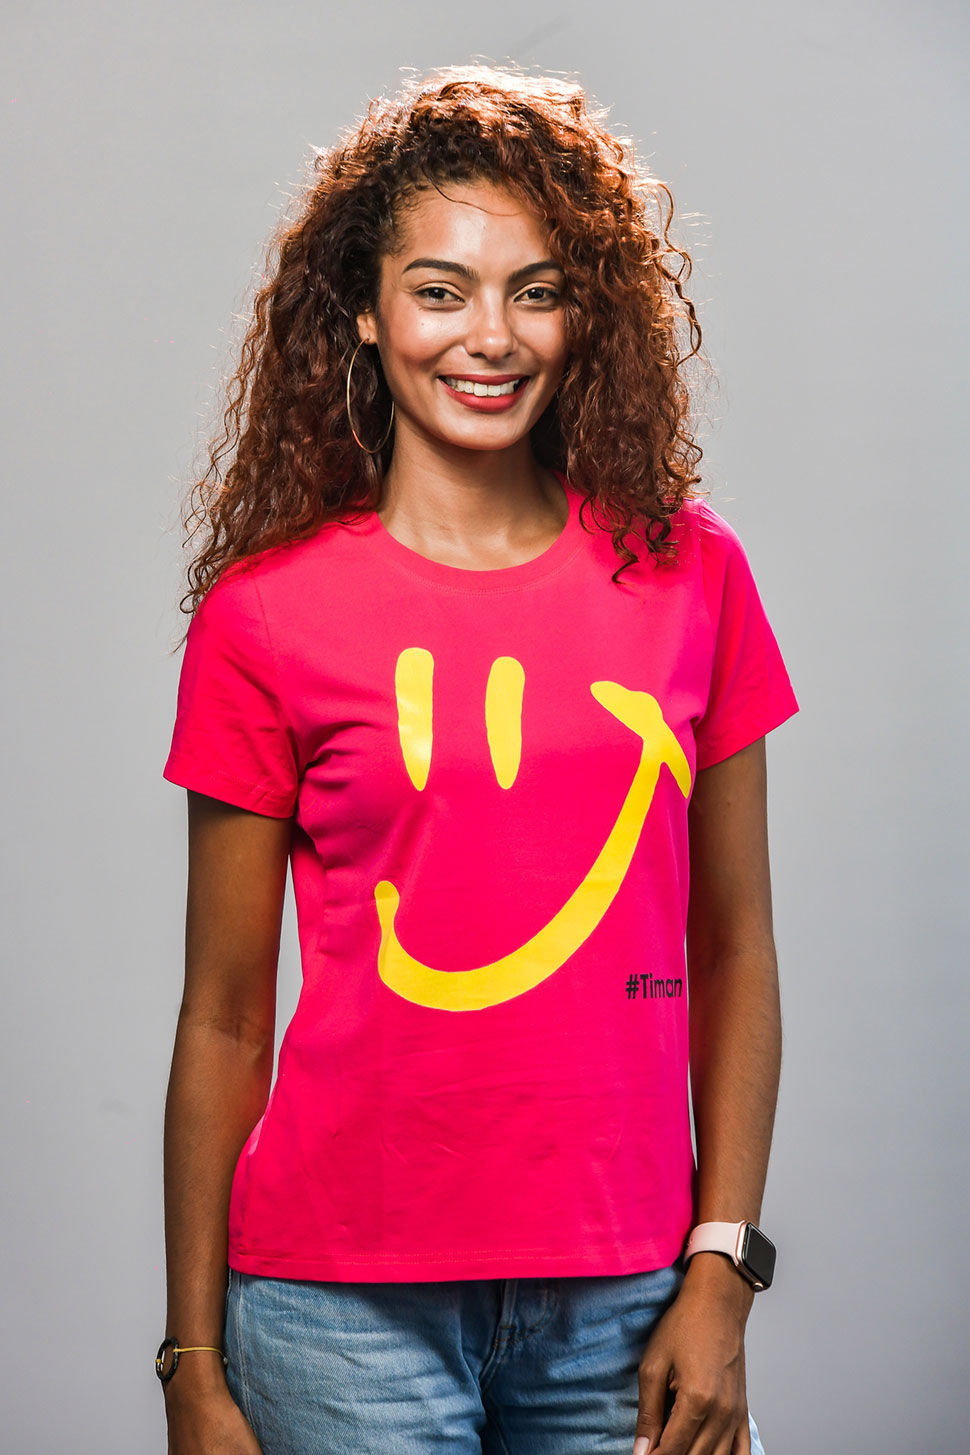 Women's Yellow Luna Fuschia T-Shirt Model 1